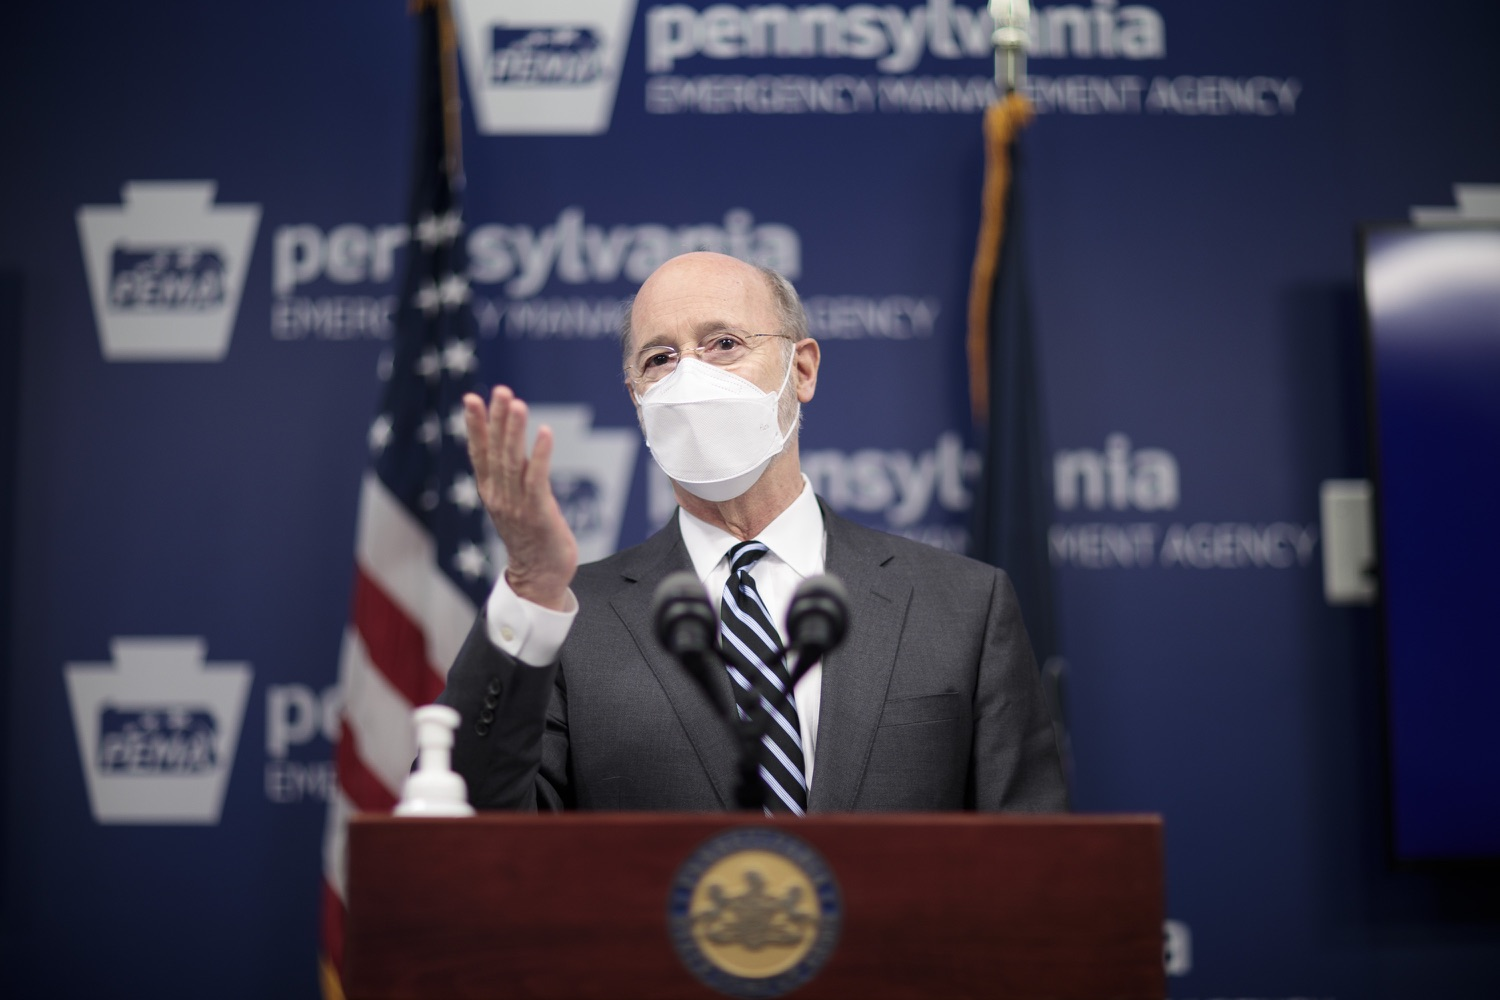 "<a href=""https://filesource.wostreaming.net/commonwealthofpa/photo/18521_gov_minimumWage_dz_15.jpg"" target=""_blank"">⇣ Download Photo<br></a>Pennsylvania Governor Tom Wolf answers questions from the press.  Building on his plan to cut personal income taxes for 2.8 million Pennsylvanians, Governor Tom Wolf wants to help thousands of essential workers struggling to buy food and avoid homelessness because of poverty wages. Today, the governor renewed his call to increase the states embarrassingly low minimum wage to $12 per hour on July 1, with annual increases of $0.50 until reaching $15 per hour on July 1, 2027. FEBRUARY 09, 2021 - HARRISBURG, PA"